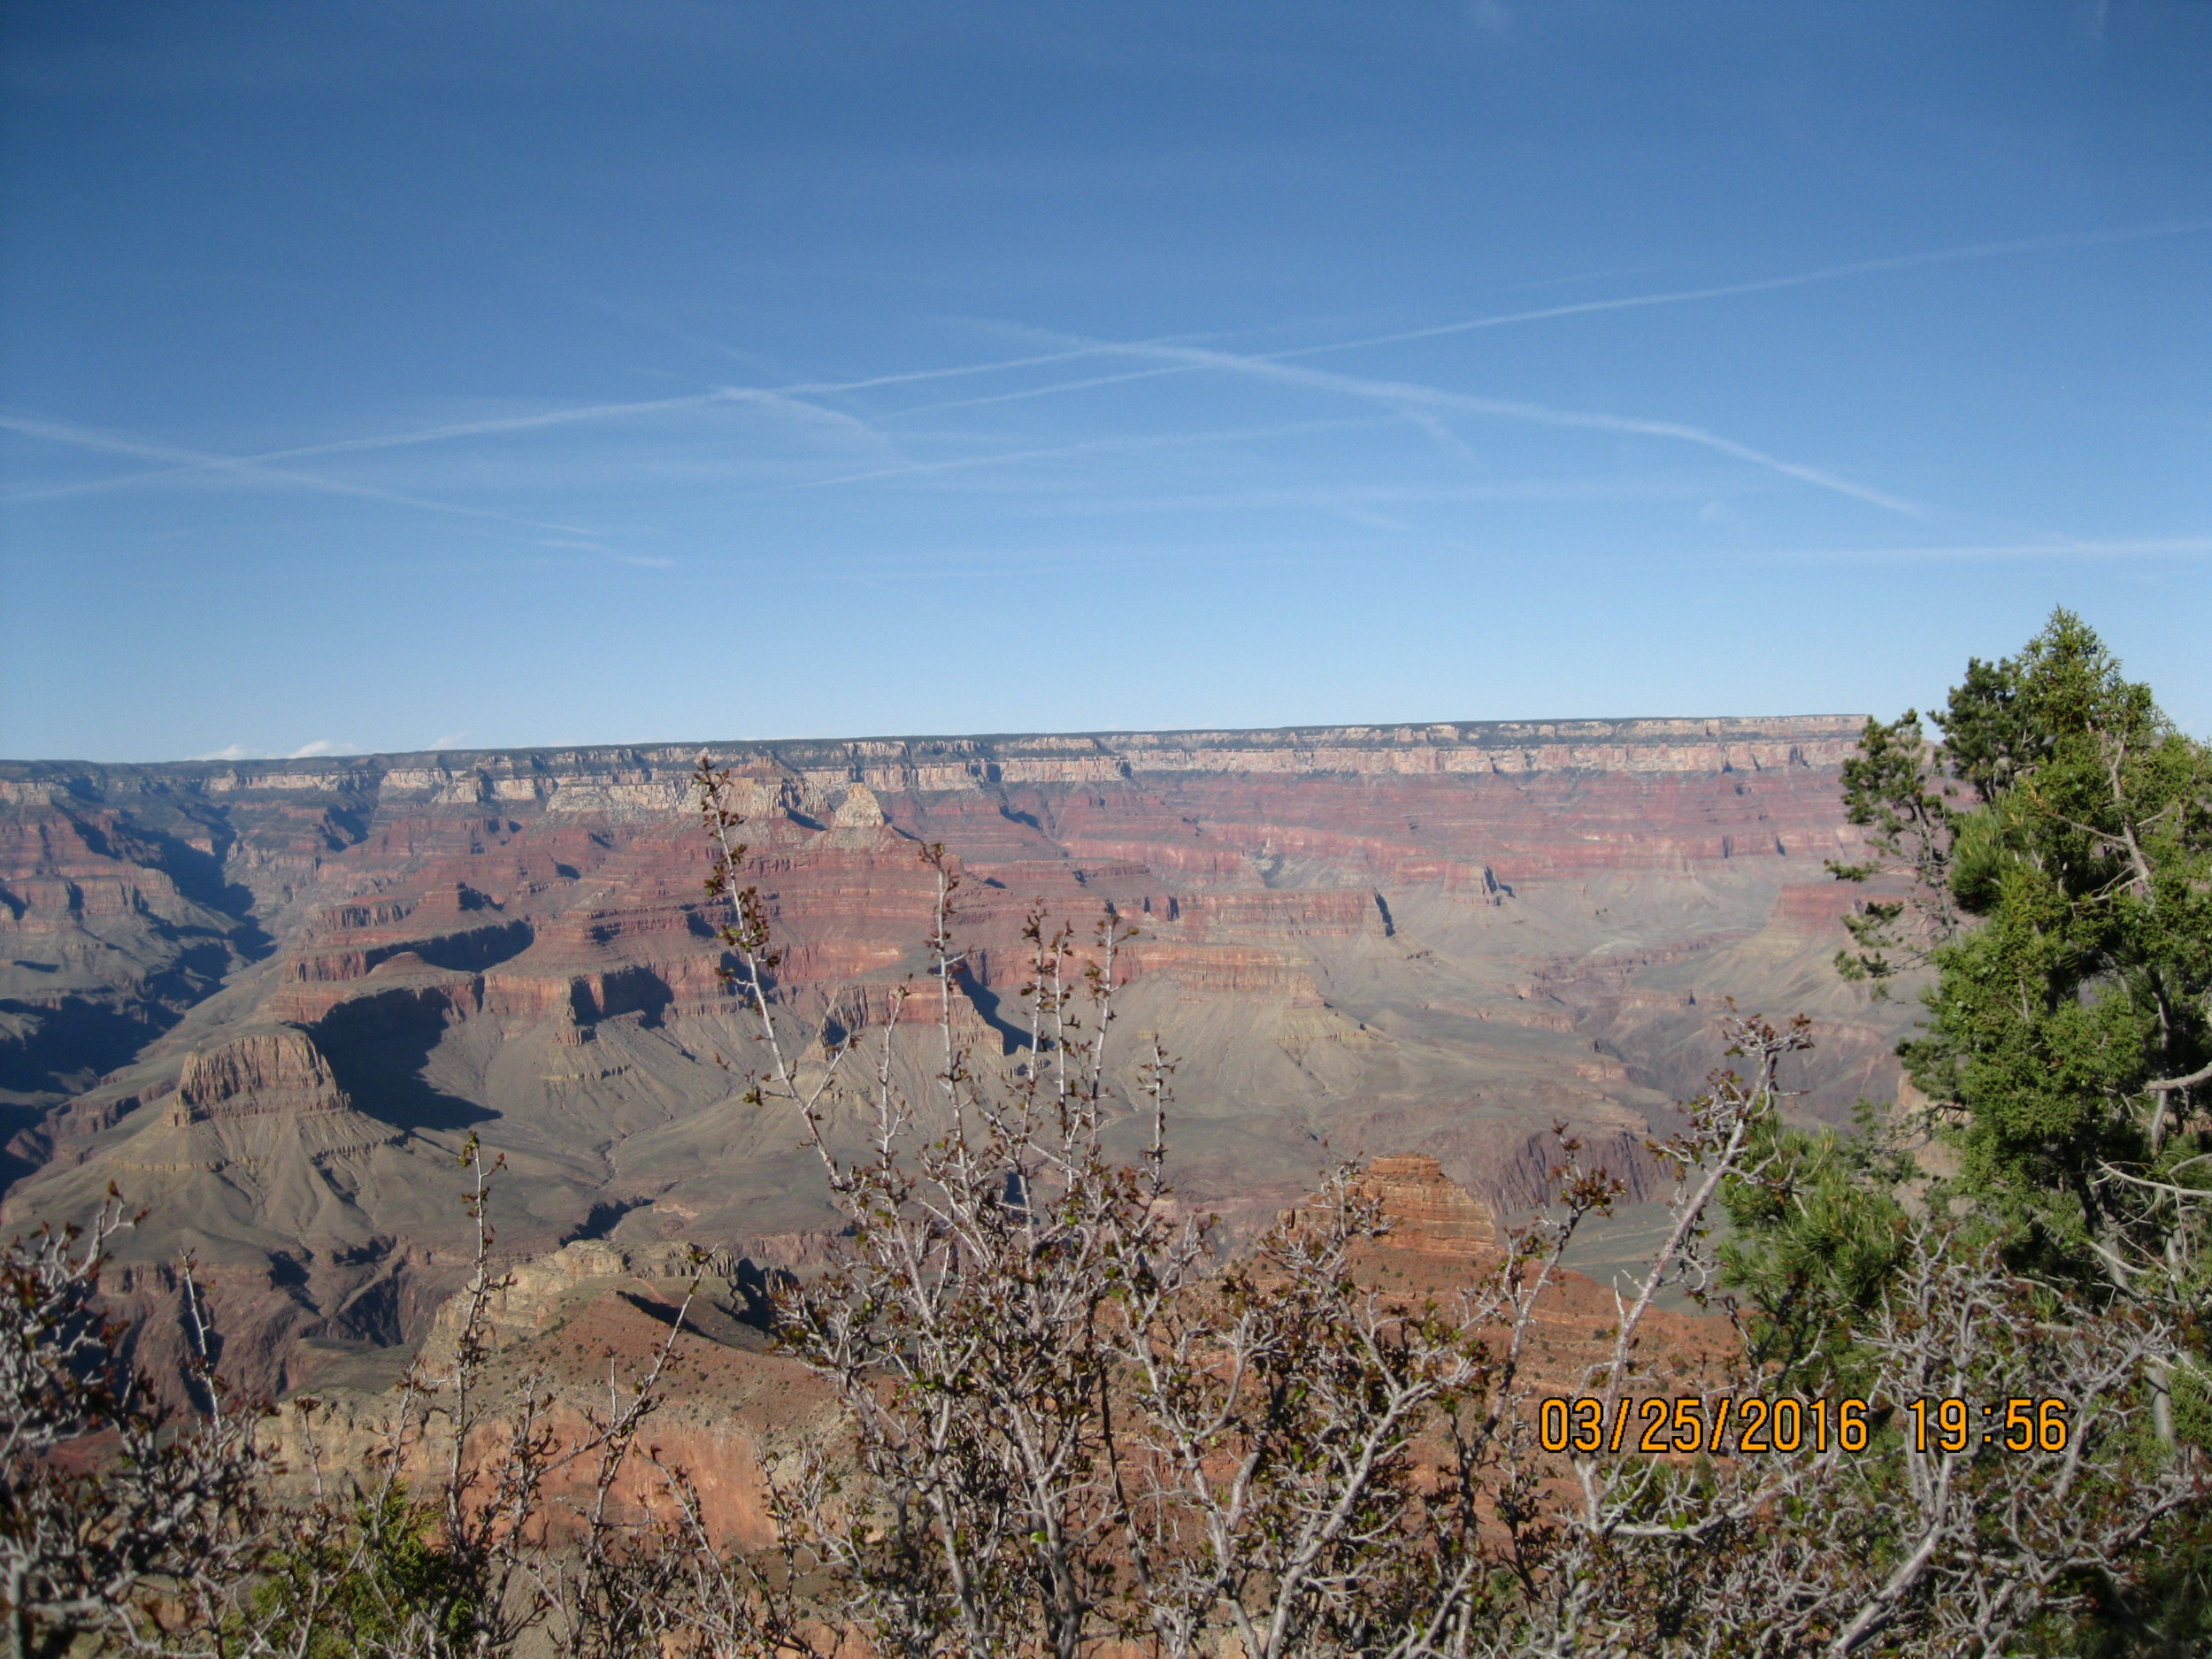 Picture of the Grand Canyon from sipra's trip this spring.